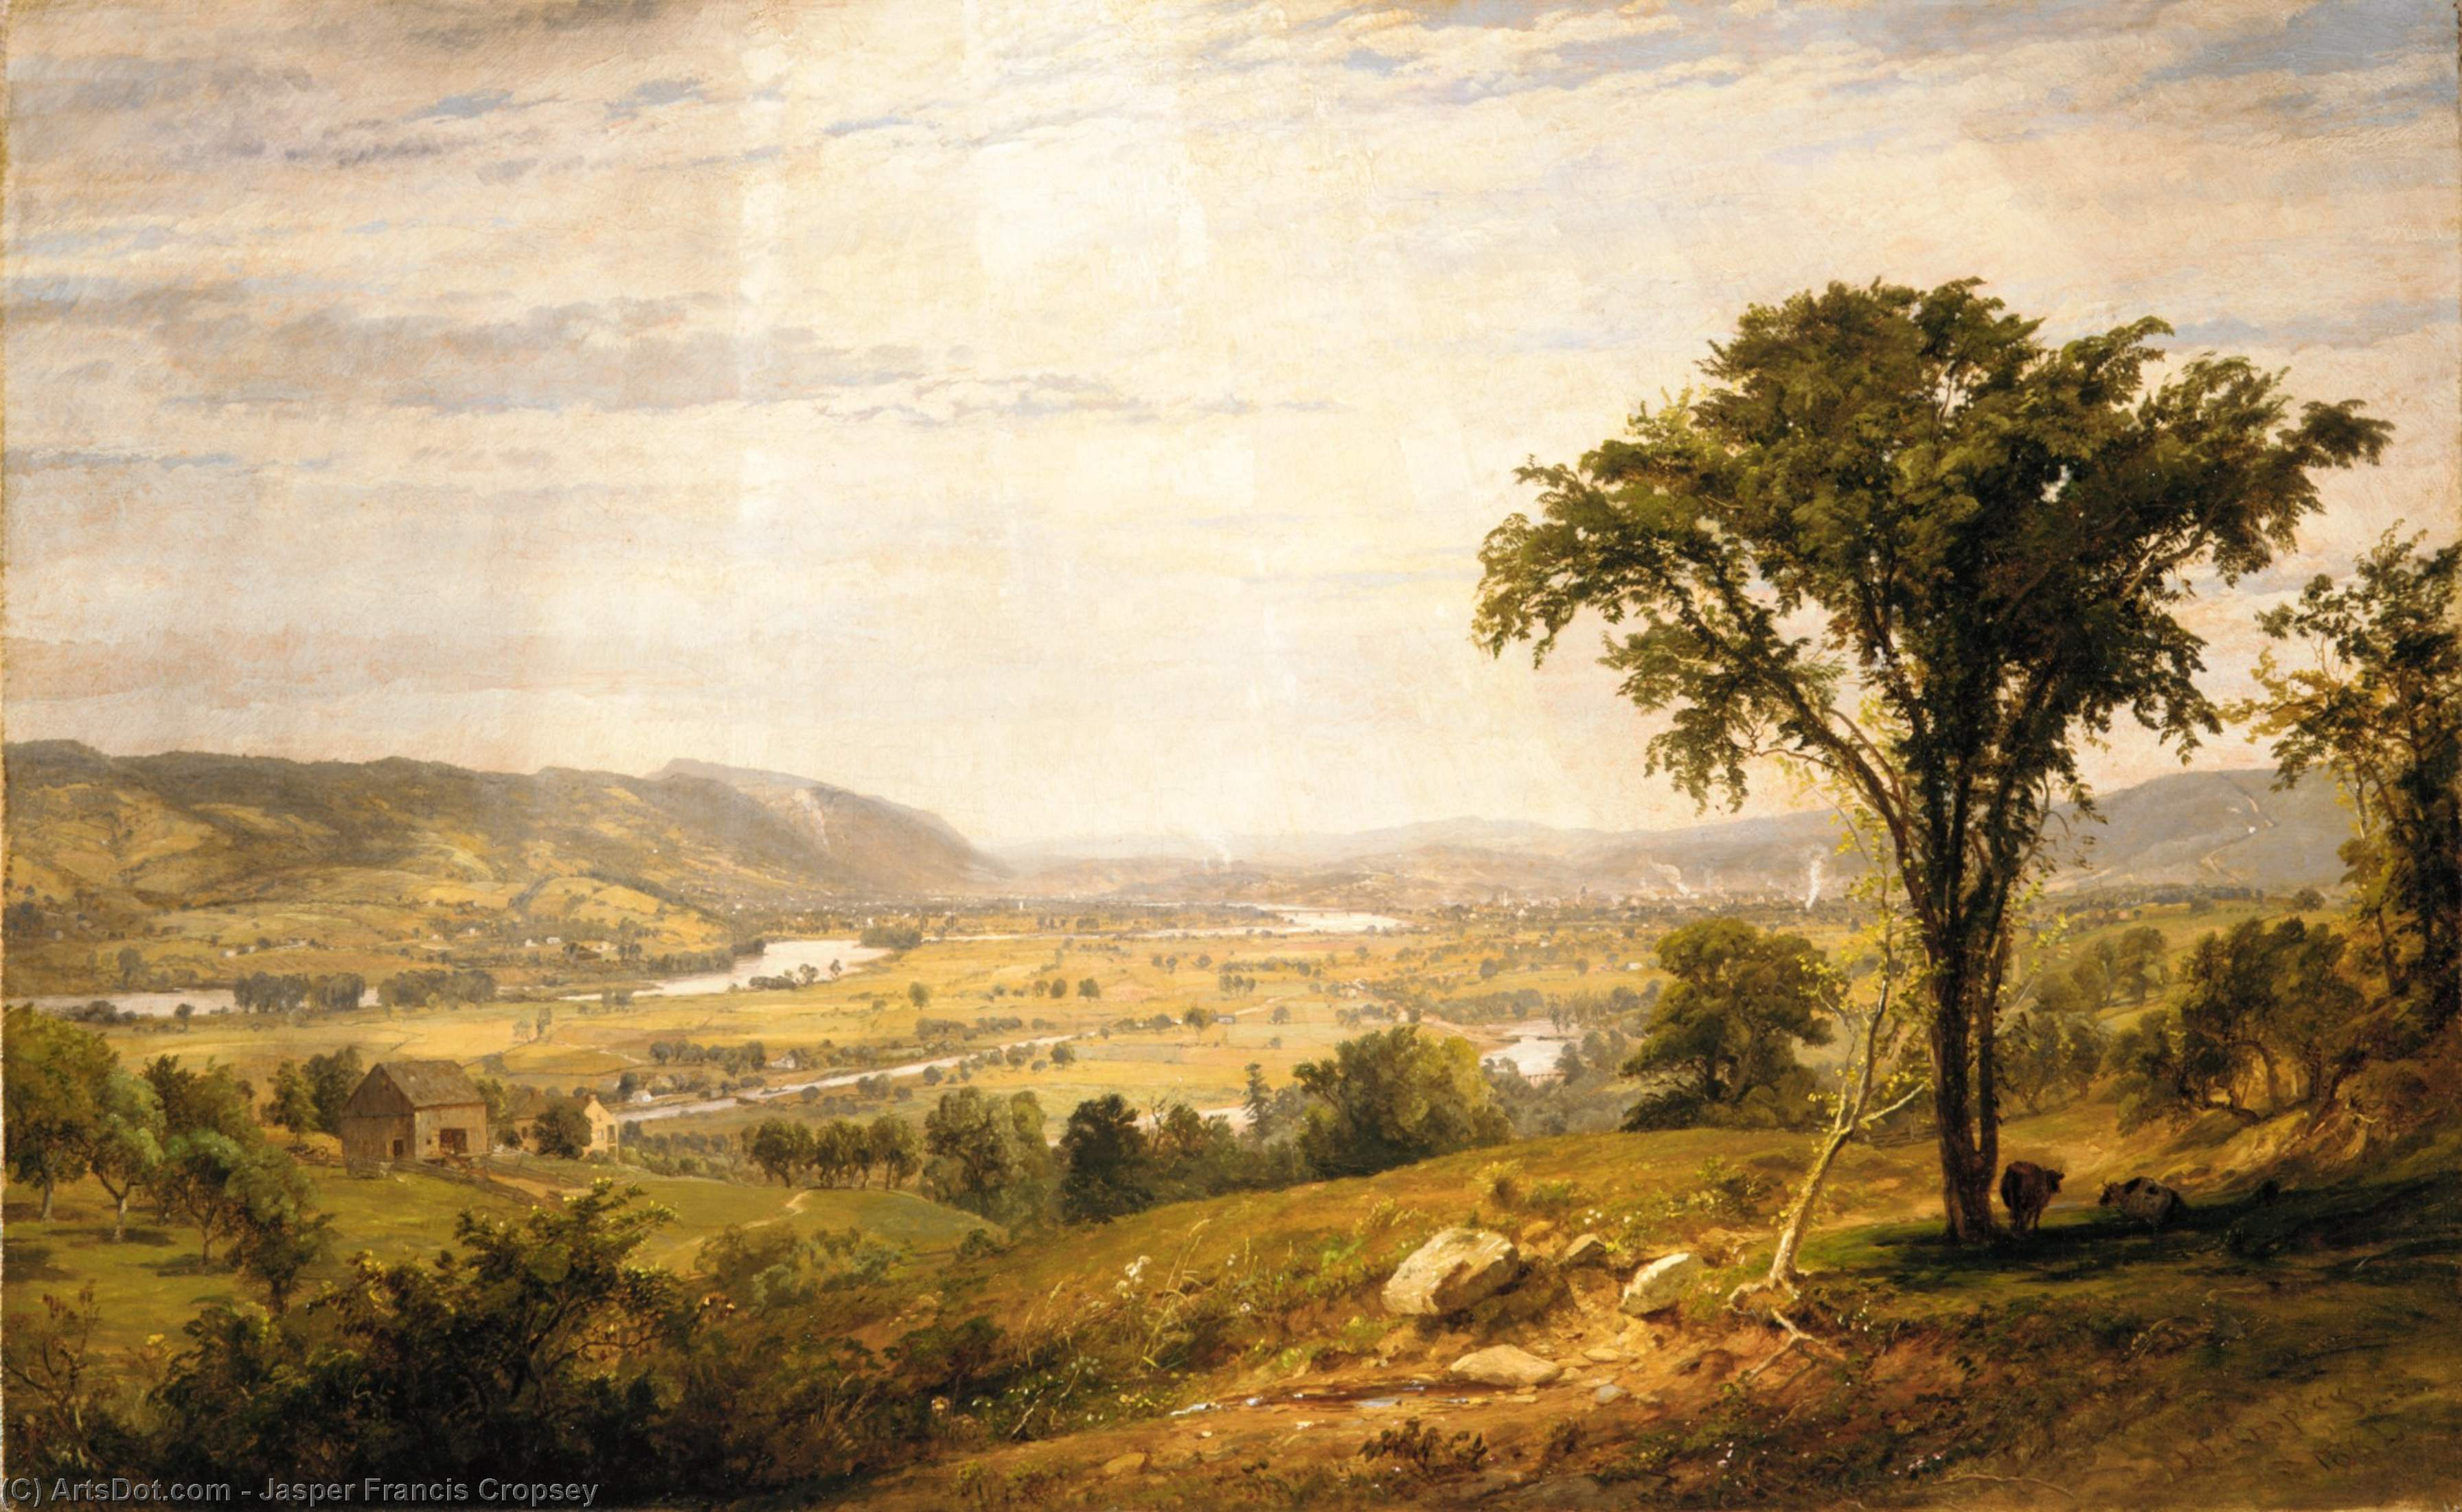 wyoming vale pensilvânia por Jasper Francis Cropsey (1823-1900, United States)